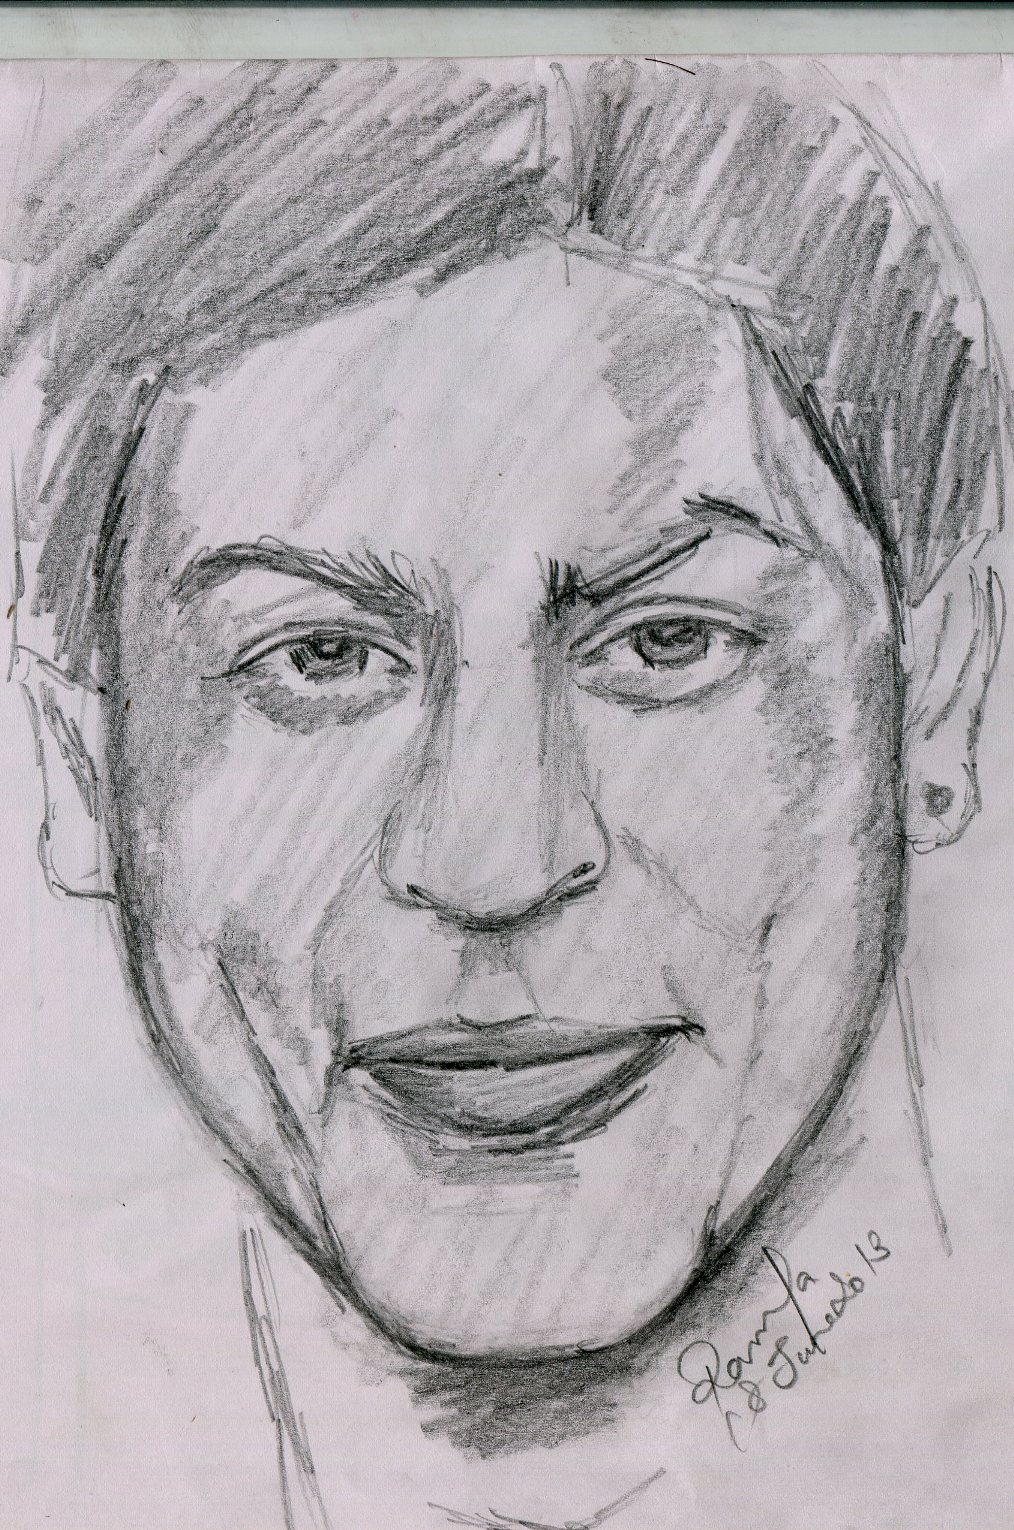 Drawn portrait bollywood Of Drawing Fame Fame Khan